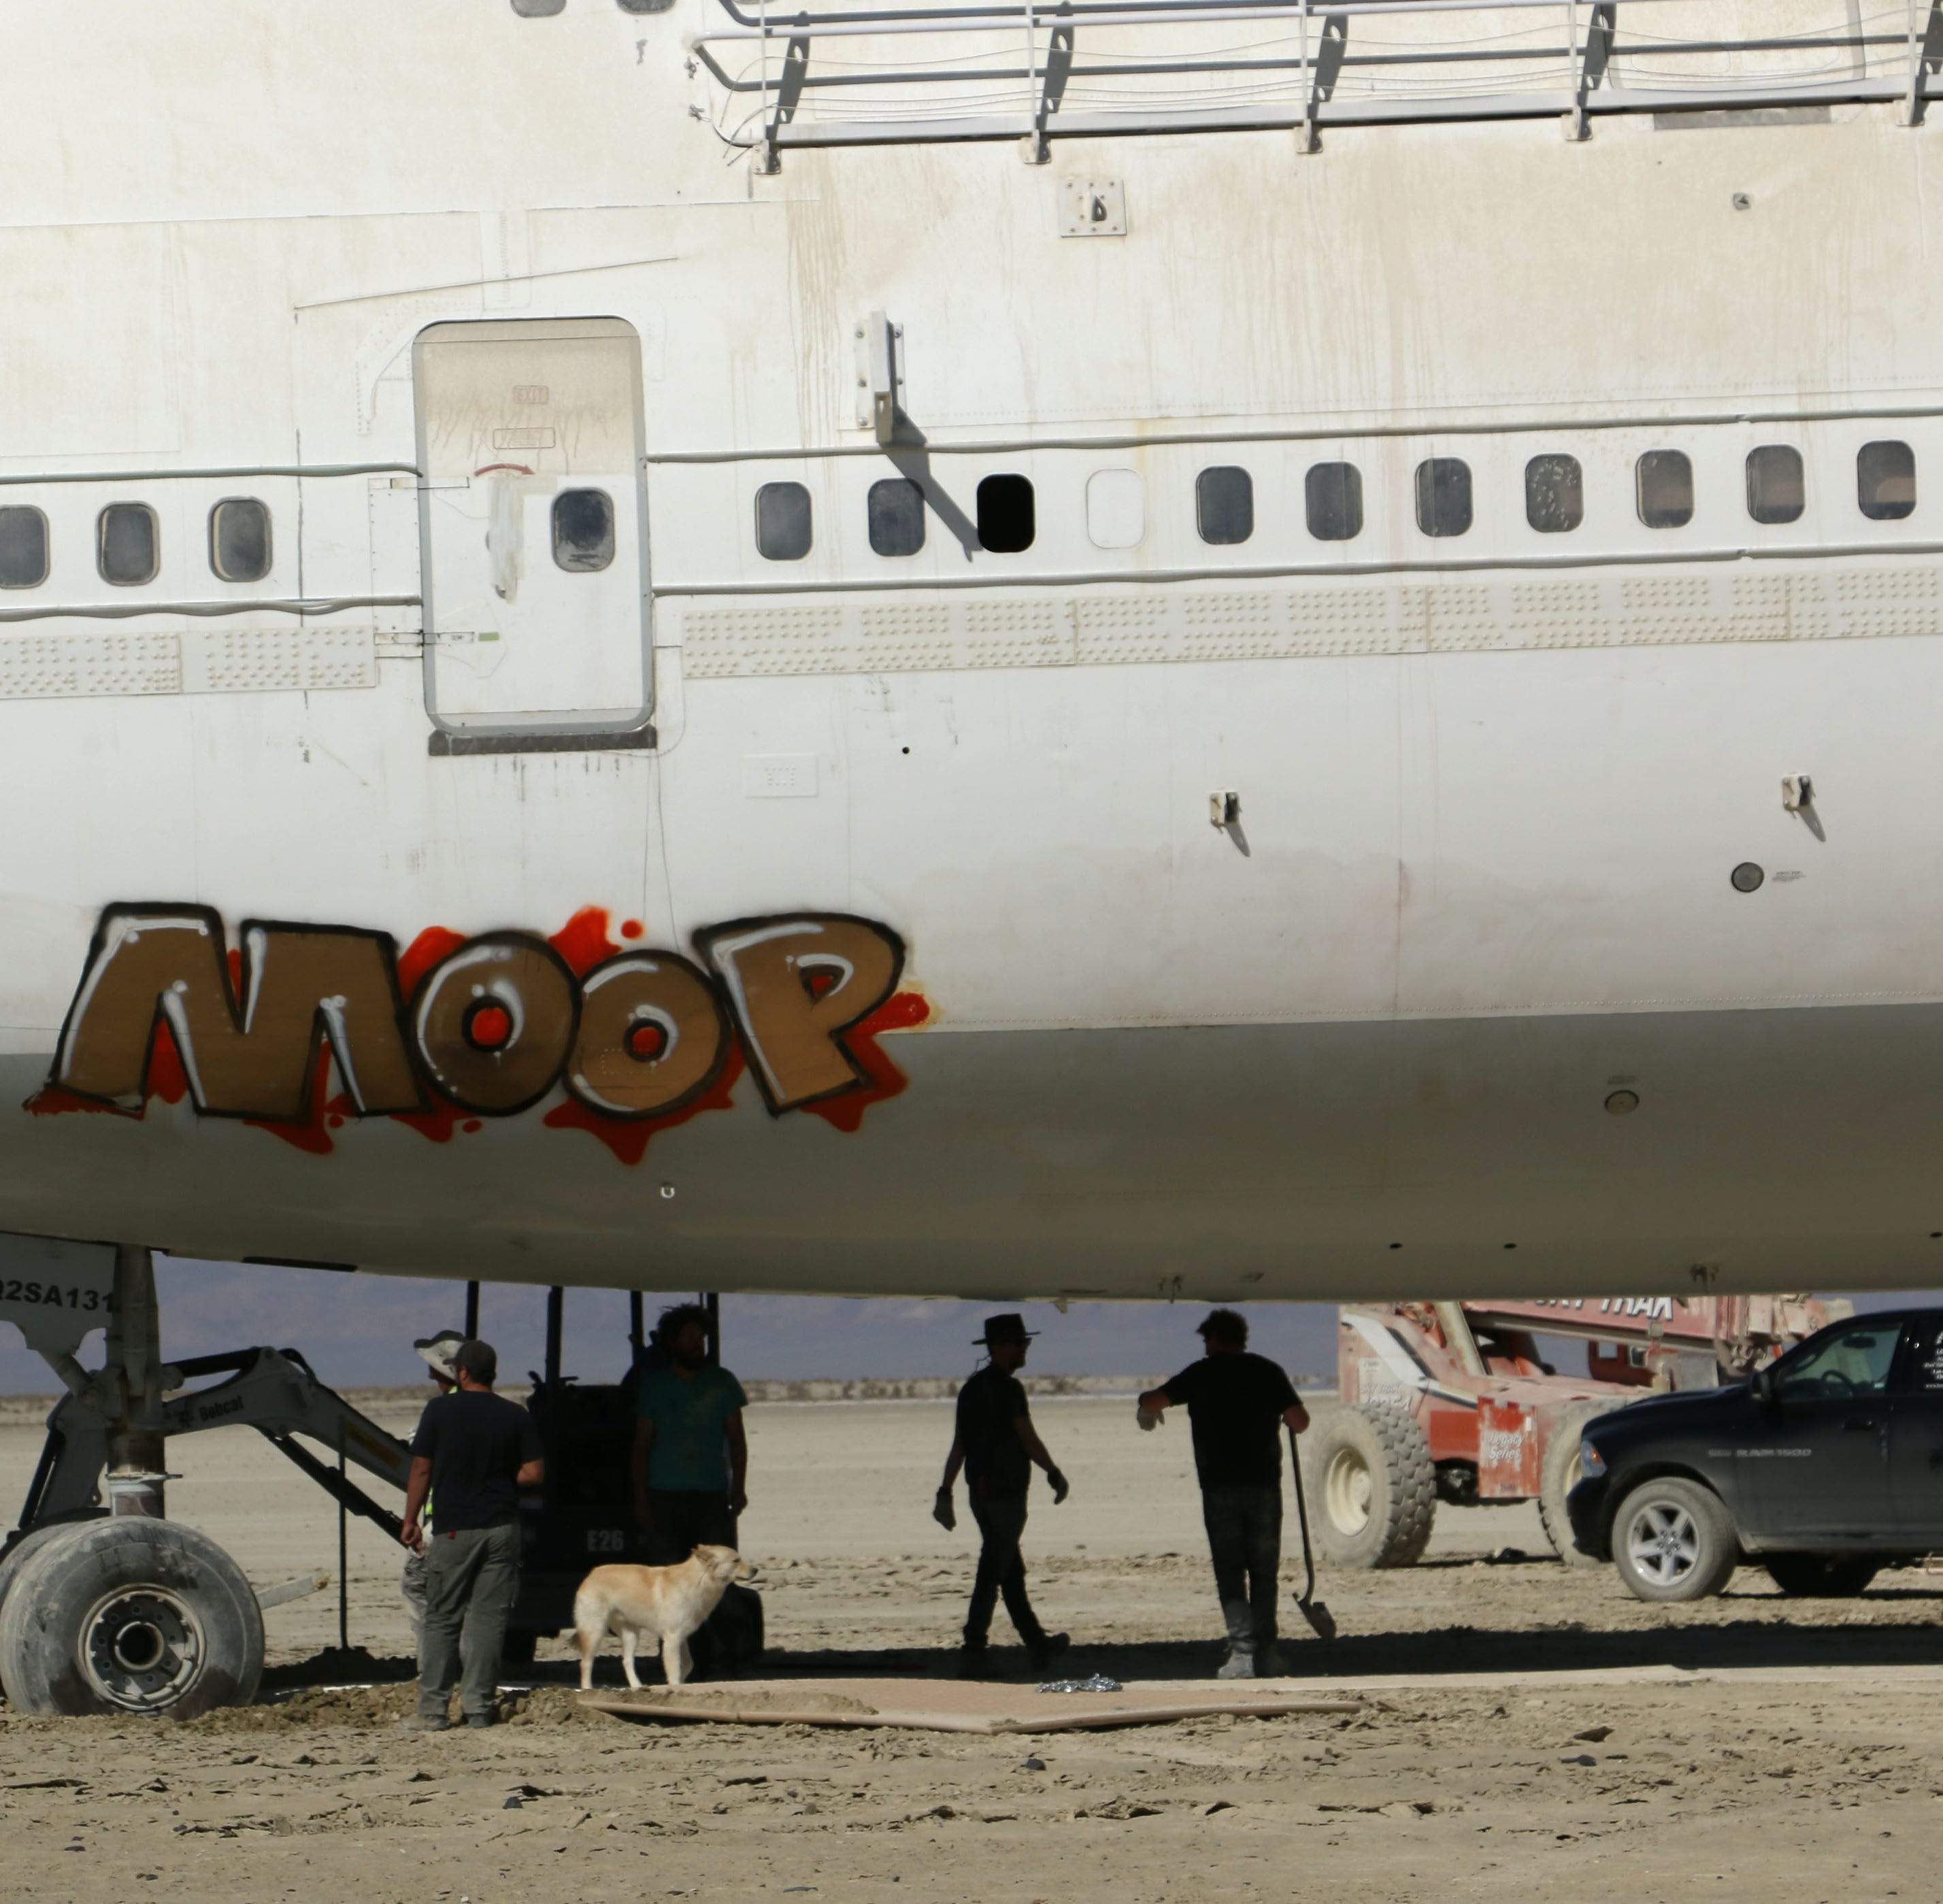 Burning Man volunteers rescue the 747 airplane from the desert: 'It will get done'